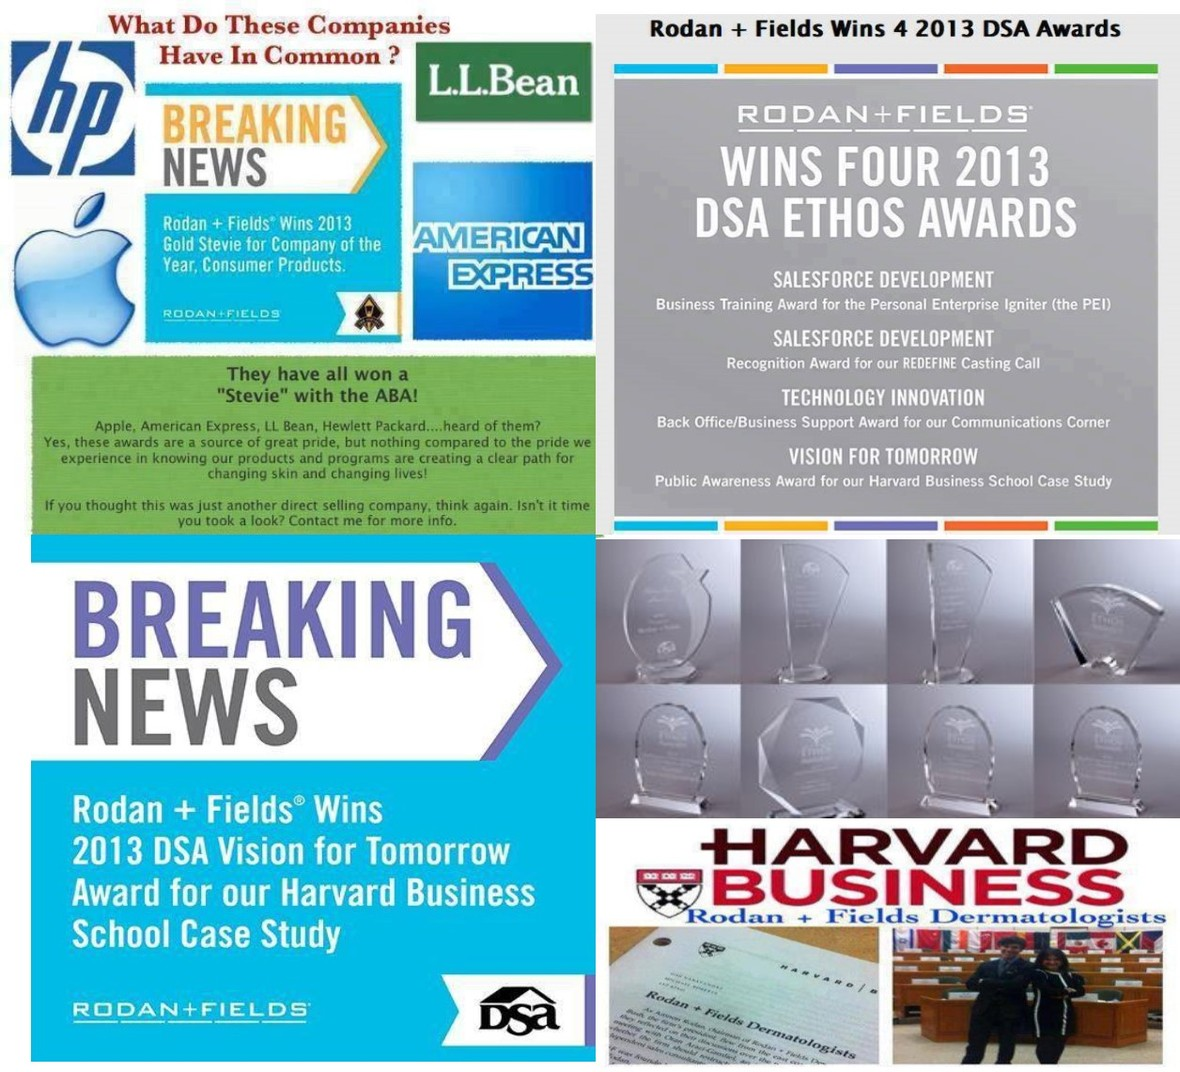 harvard business case study rodan and fields